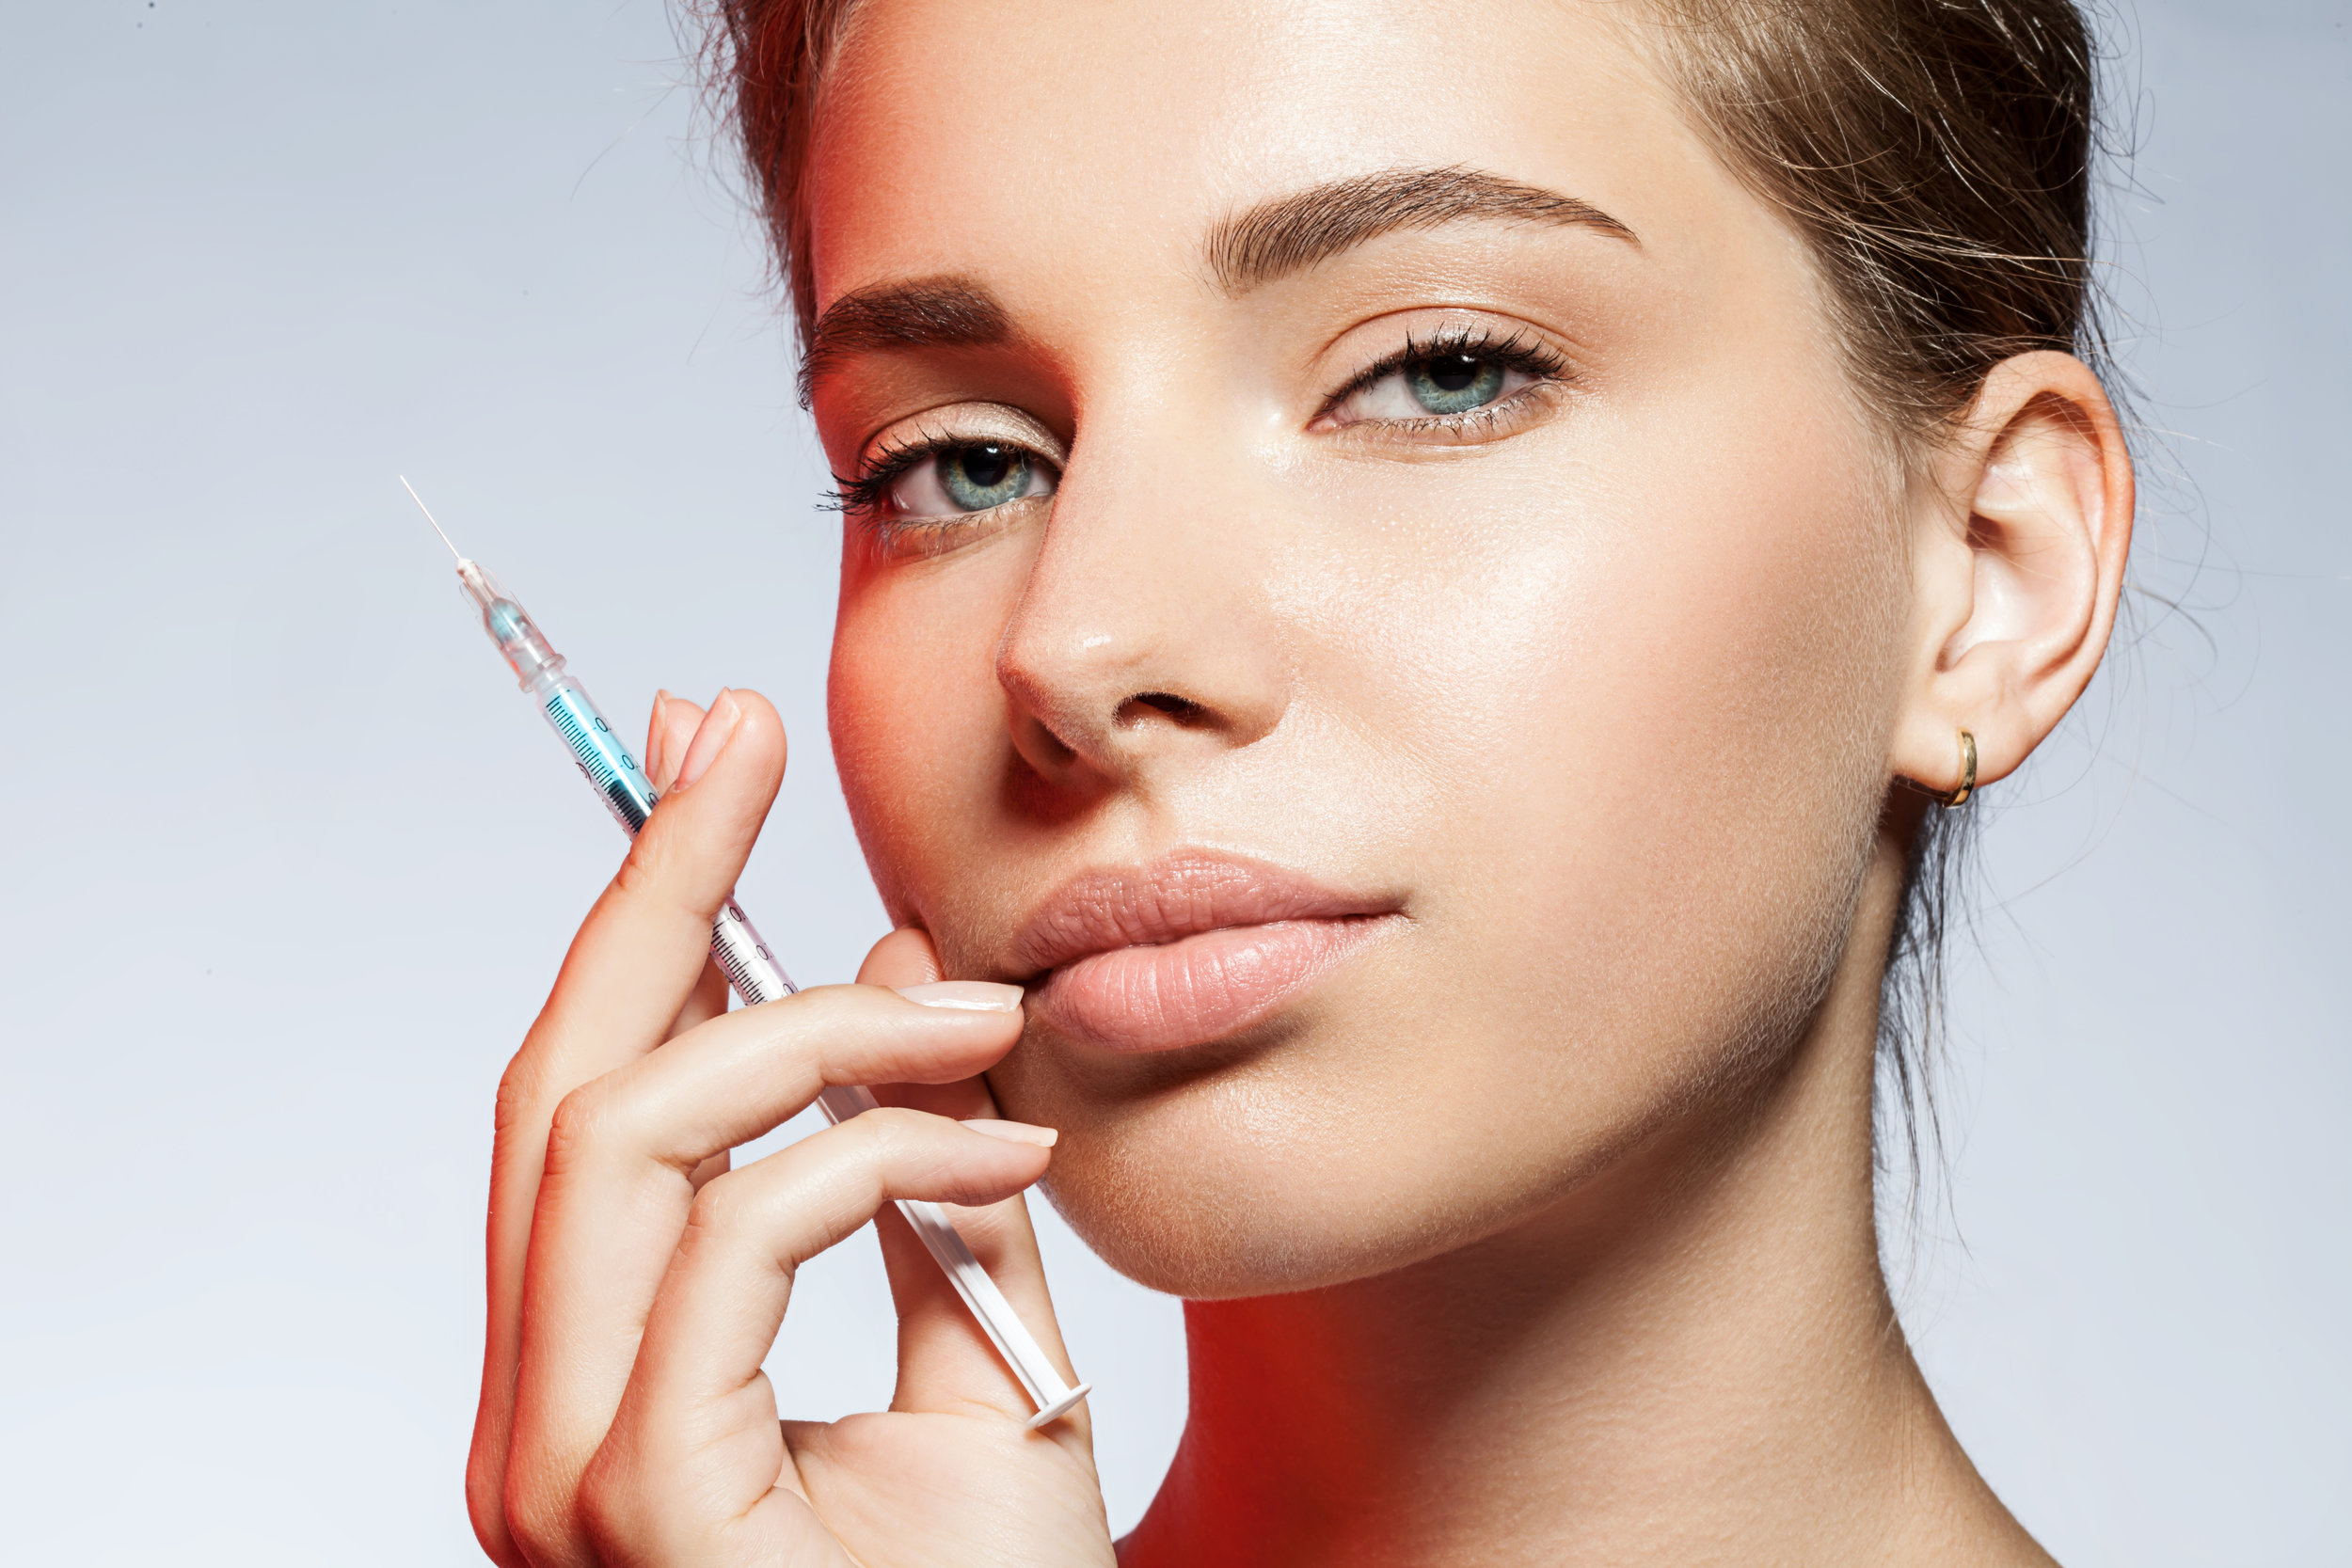 Procedures - Our team of specialists are experts in the use of injectable dermal fillers, which offer the benefits of a non-invasive approach to a younger appearance. As people age, they lose volume in the fatty tissues because the skin's underlying collagen and elastin fibers begin to break down. This happens most around the eyes, mouth, cheeks, jawline, brow and bridge of the nose. This aging process results in lines, depressions and furrows on the face.